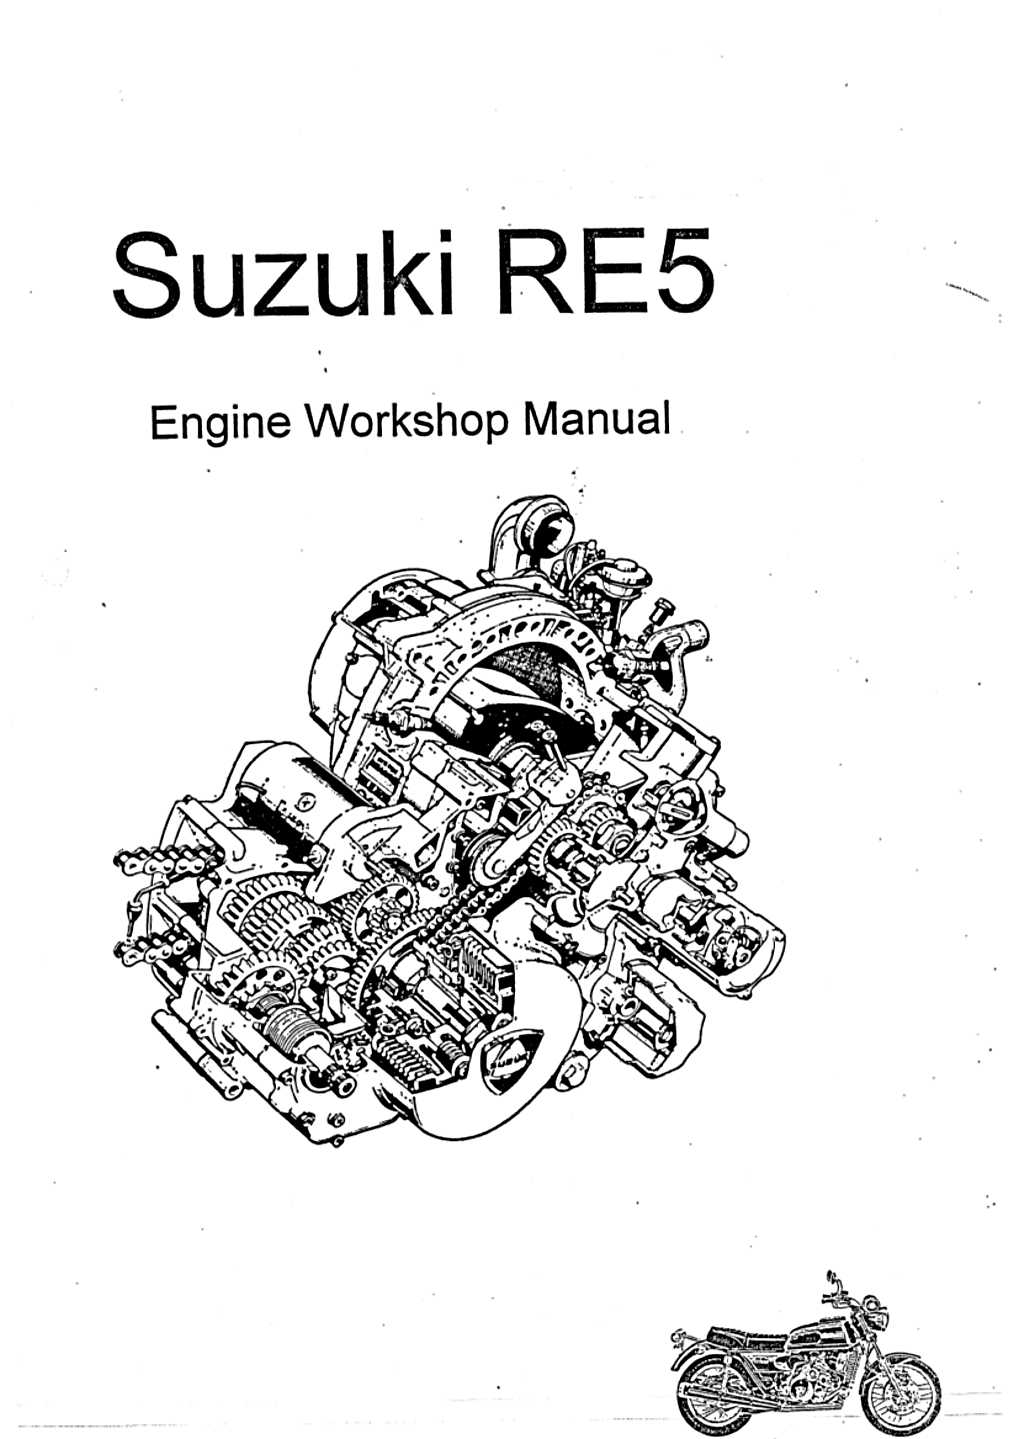 hight resolution of official toyota lexus timing belt 3 sun uses timing belt rather than chain 3l engine repair manual supplement most others diesel was manufactured by